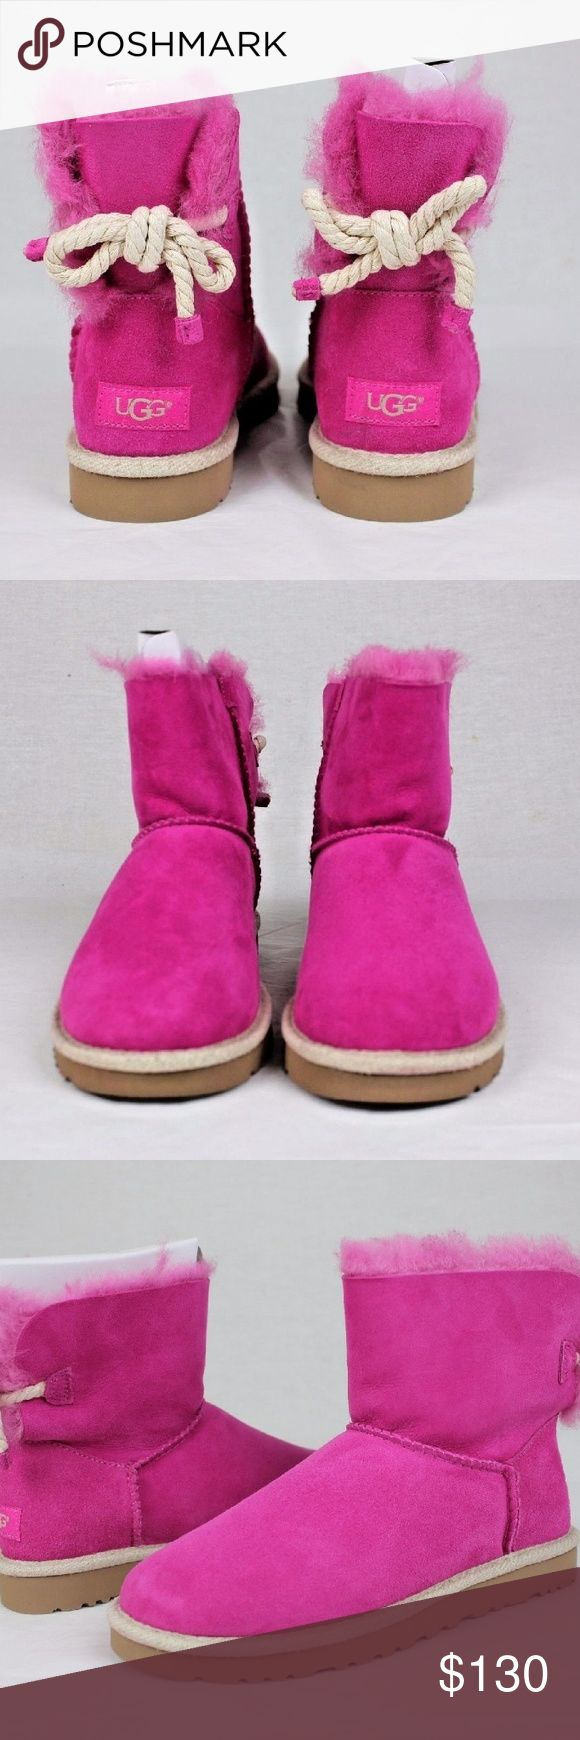 UGG Selene Nautical Rope Bow Fuchsia size 10 UGG authentic Selene rope bow boots Sz 10 new 100% authentic QR reader scannable tag. New with tags. UGG Shoes Ankle Boots & Booties